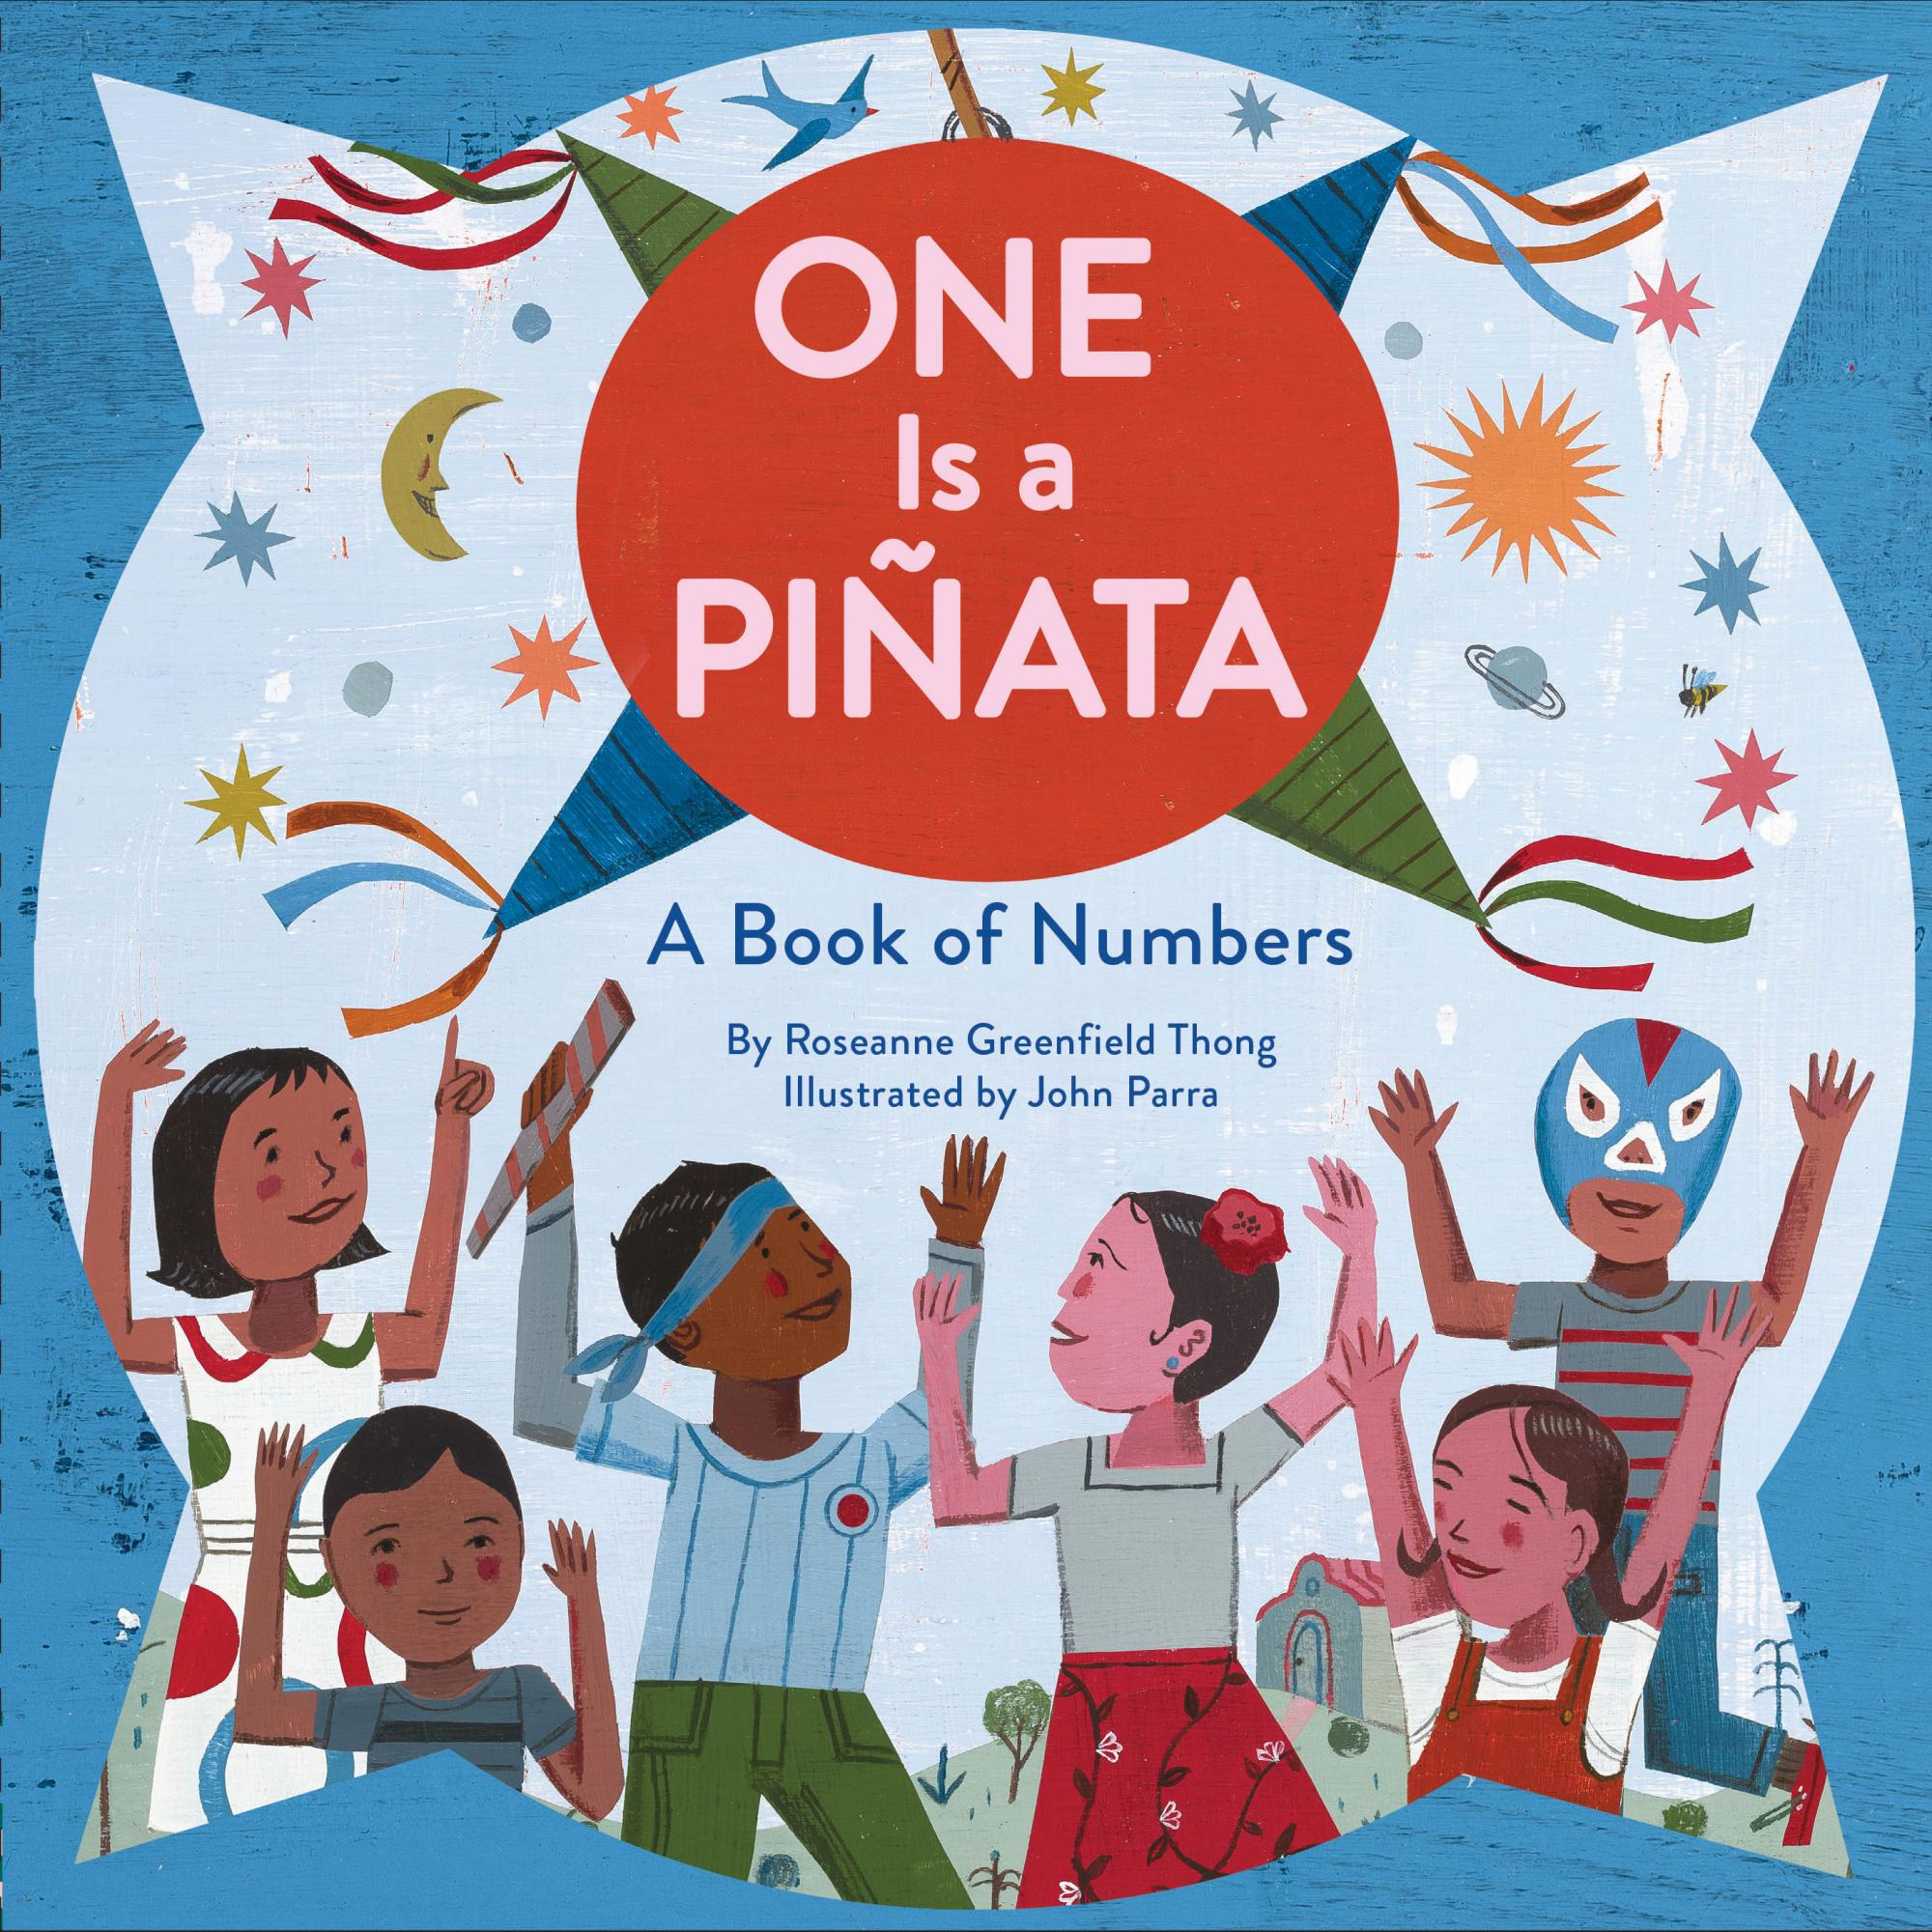 **Starred Review from SLJ for ONE IS A PINATA**